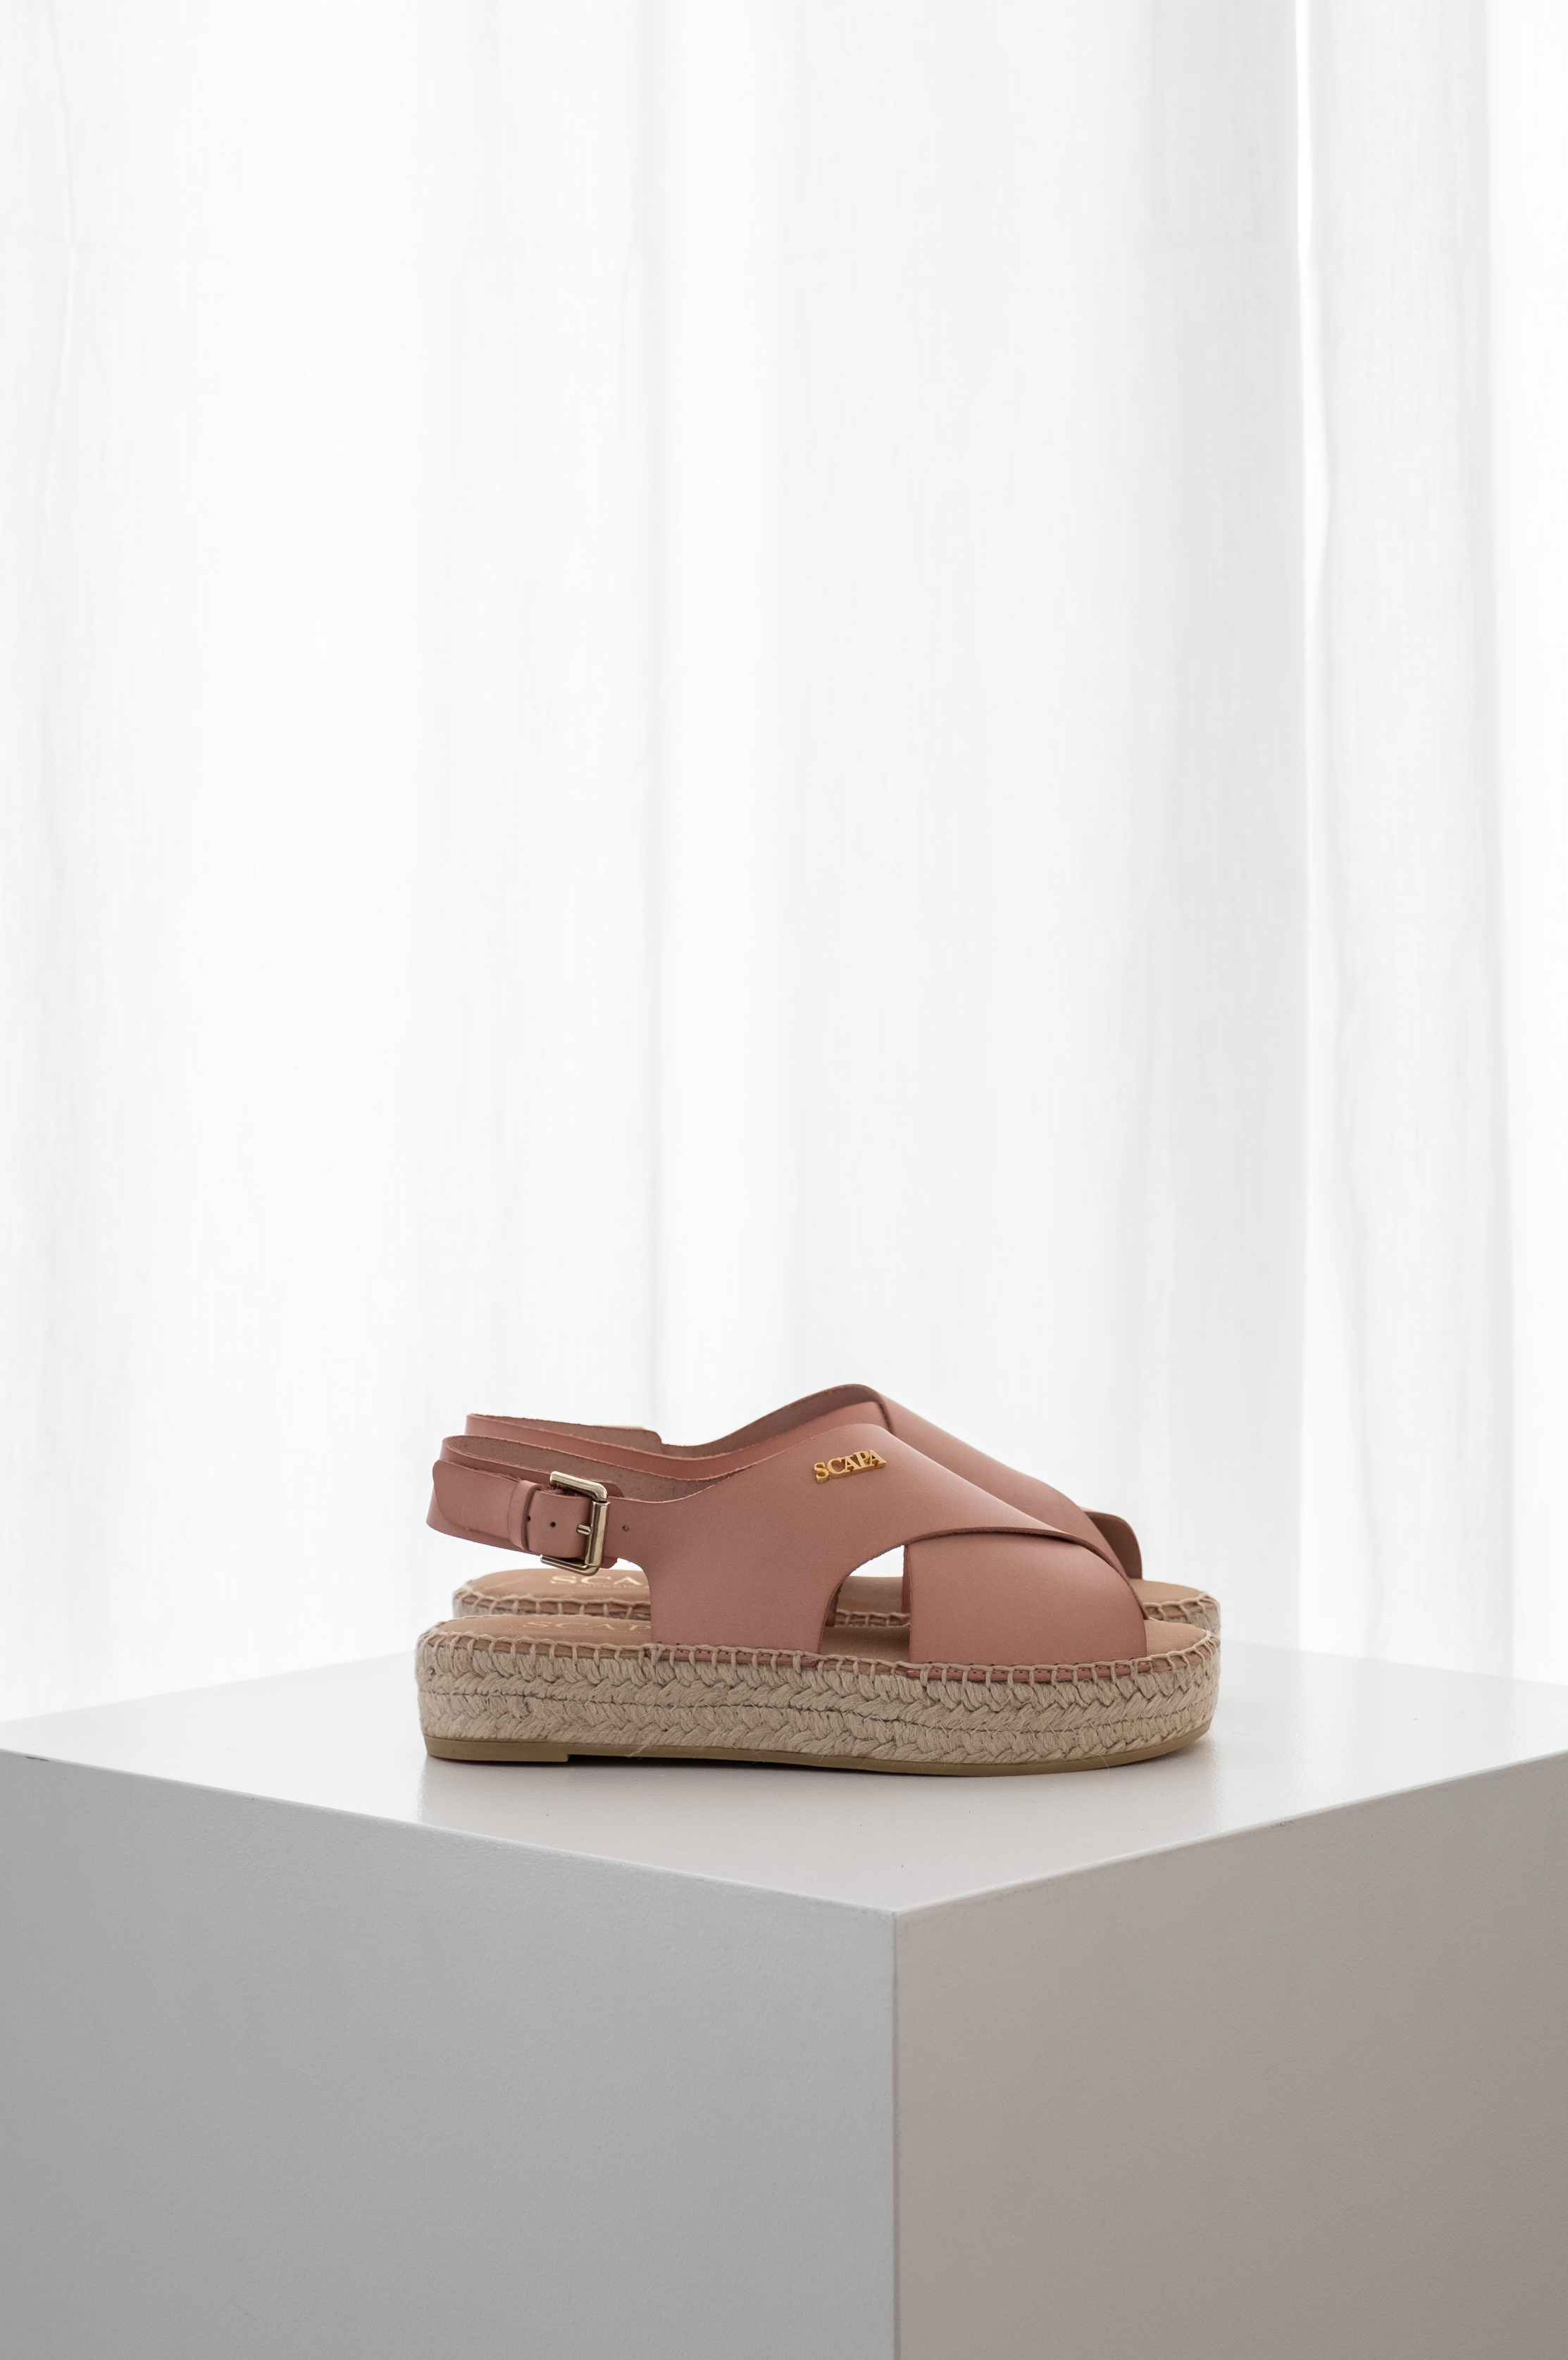 ESPADRILLE MADRID - Shoes - SCAPA FASHION - SCAPA OFFICIAL